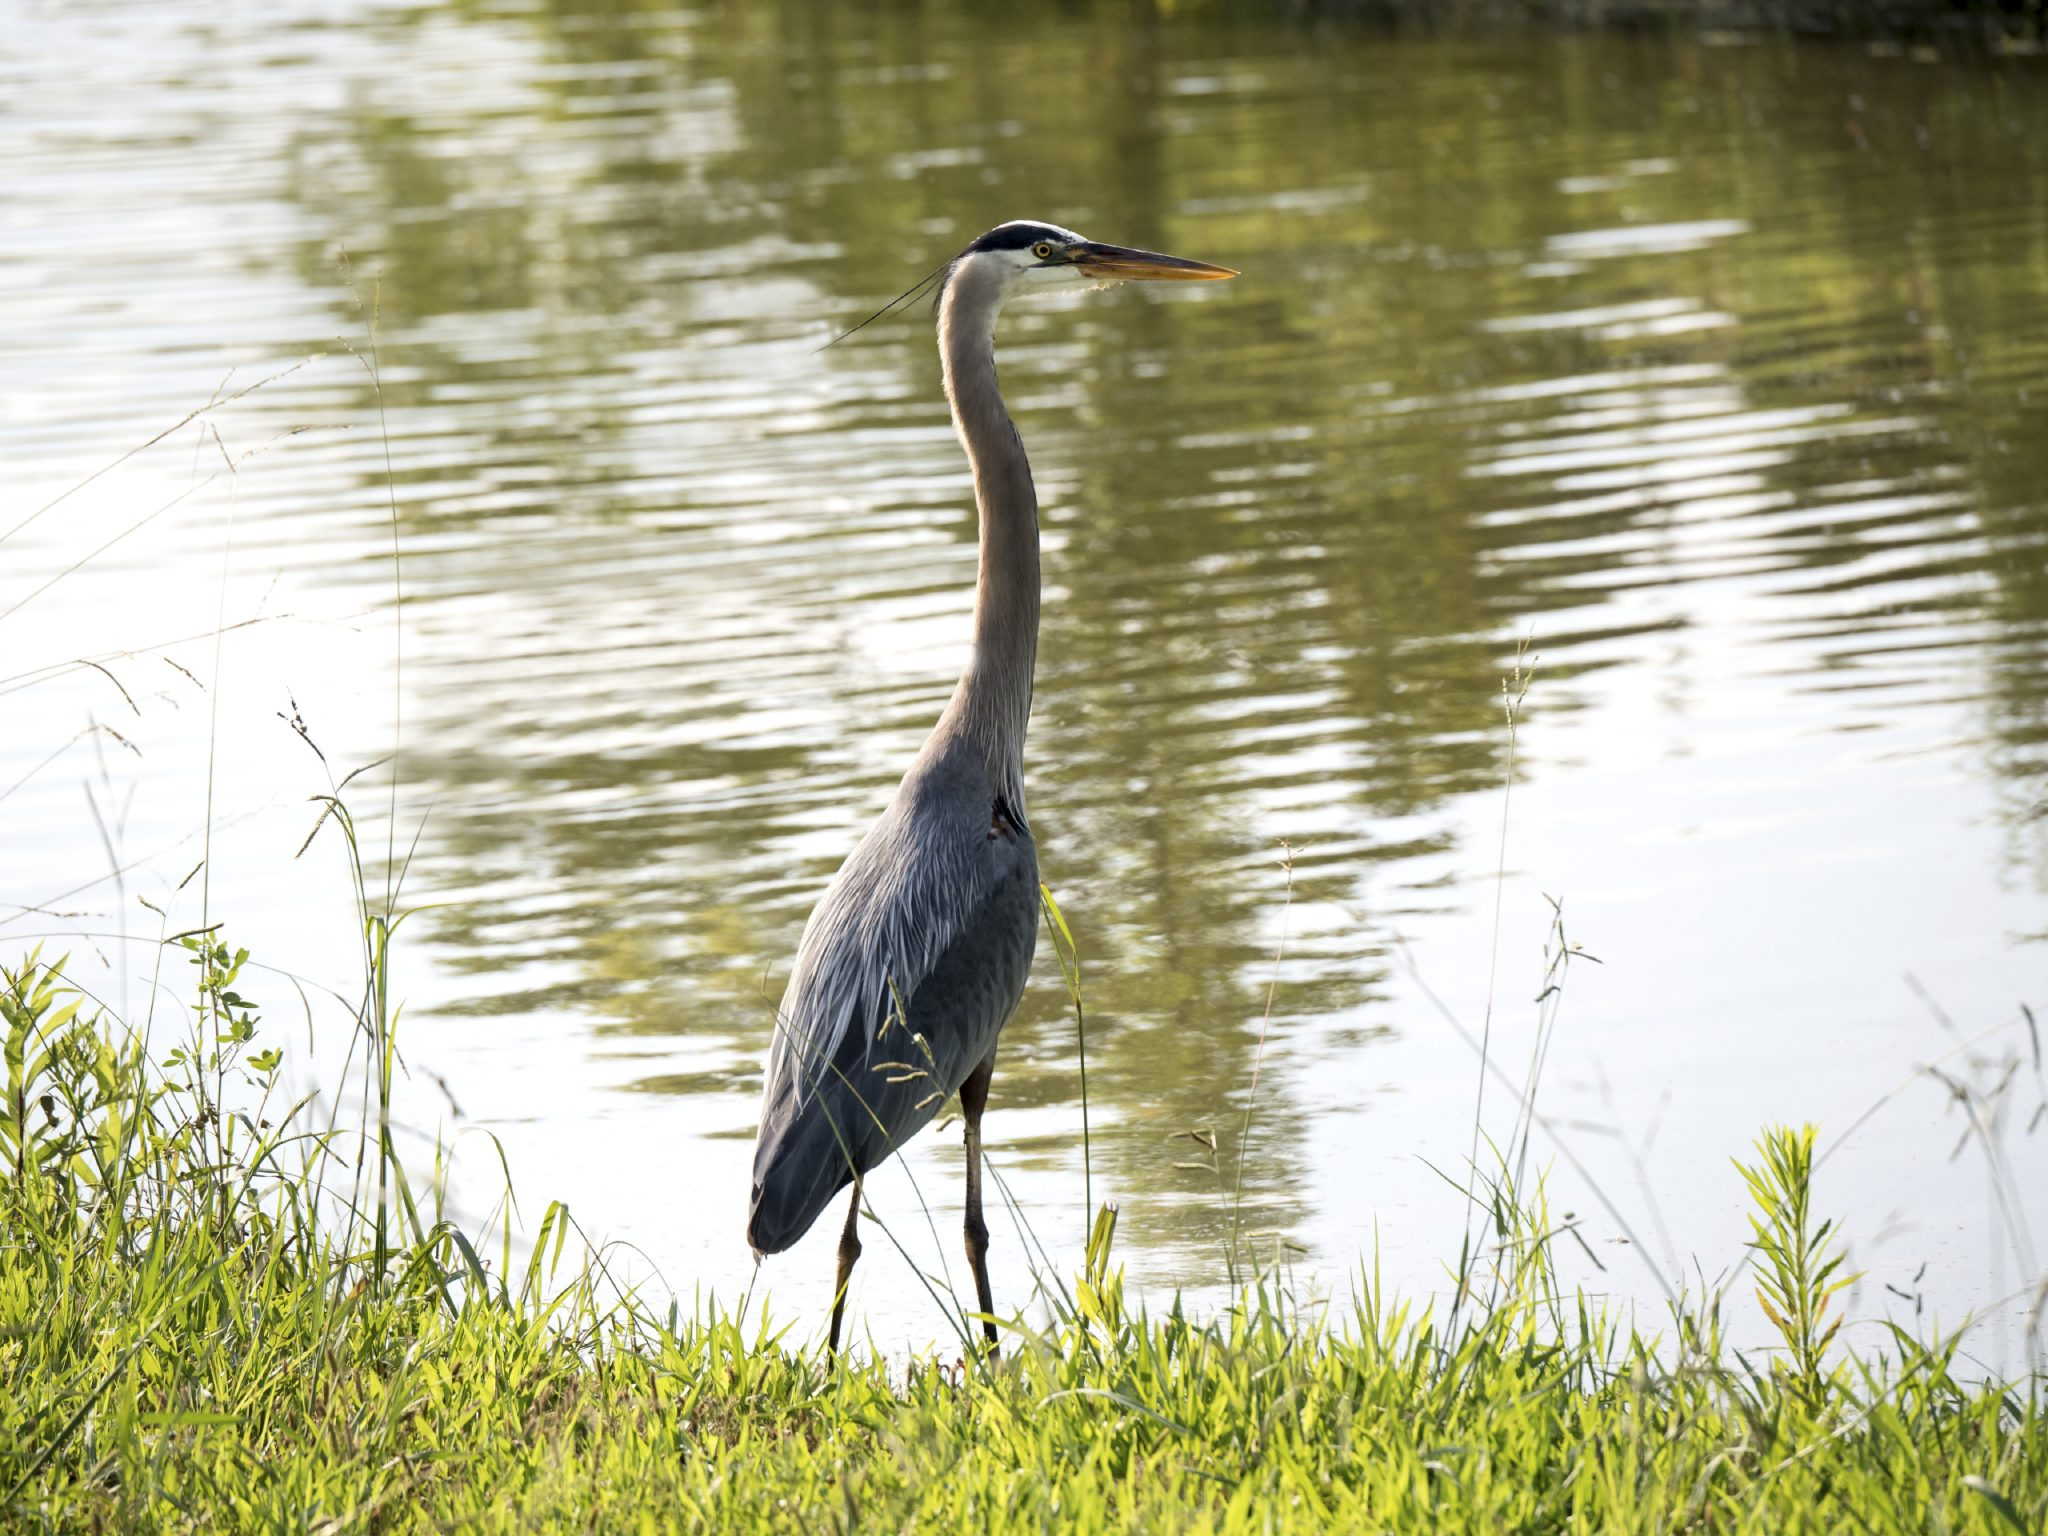 Tall bird standing beside pond